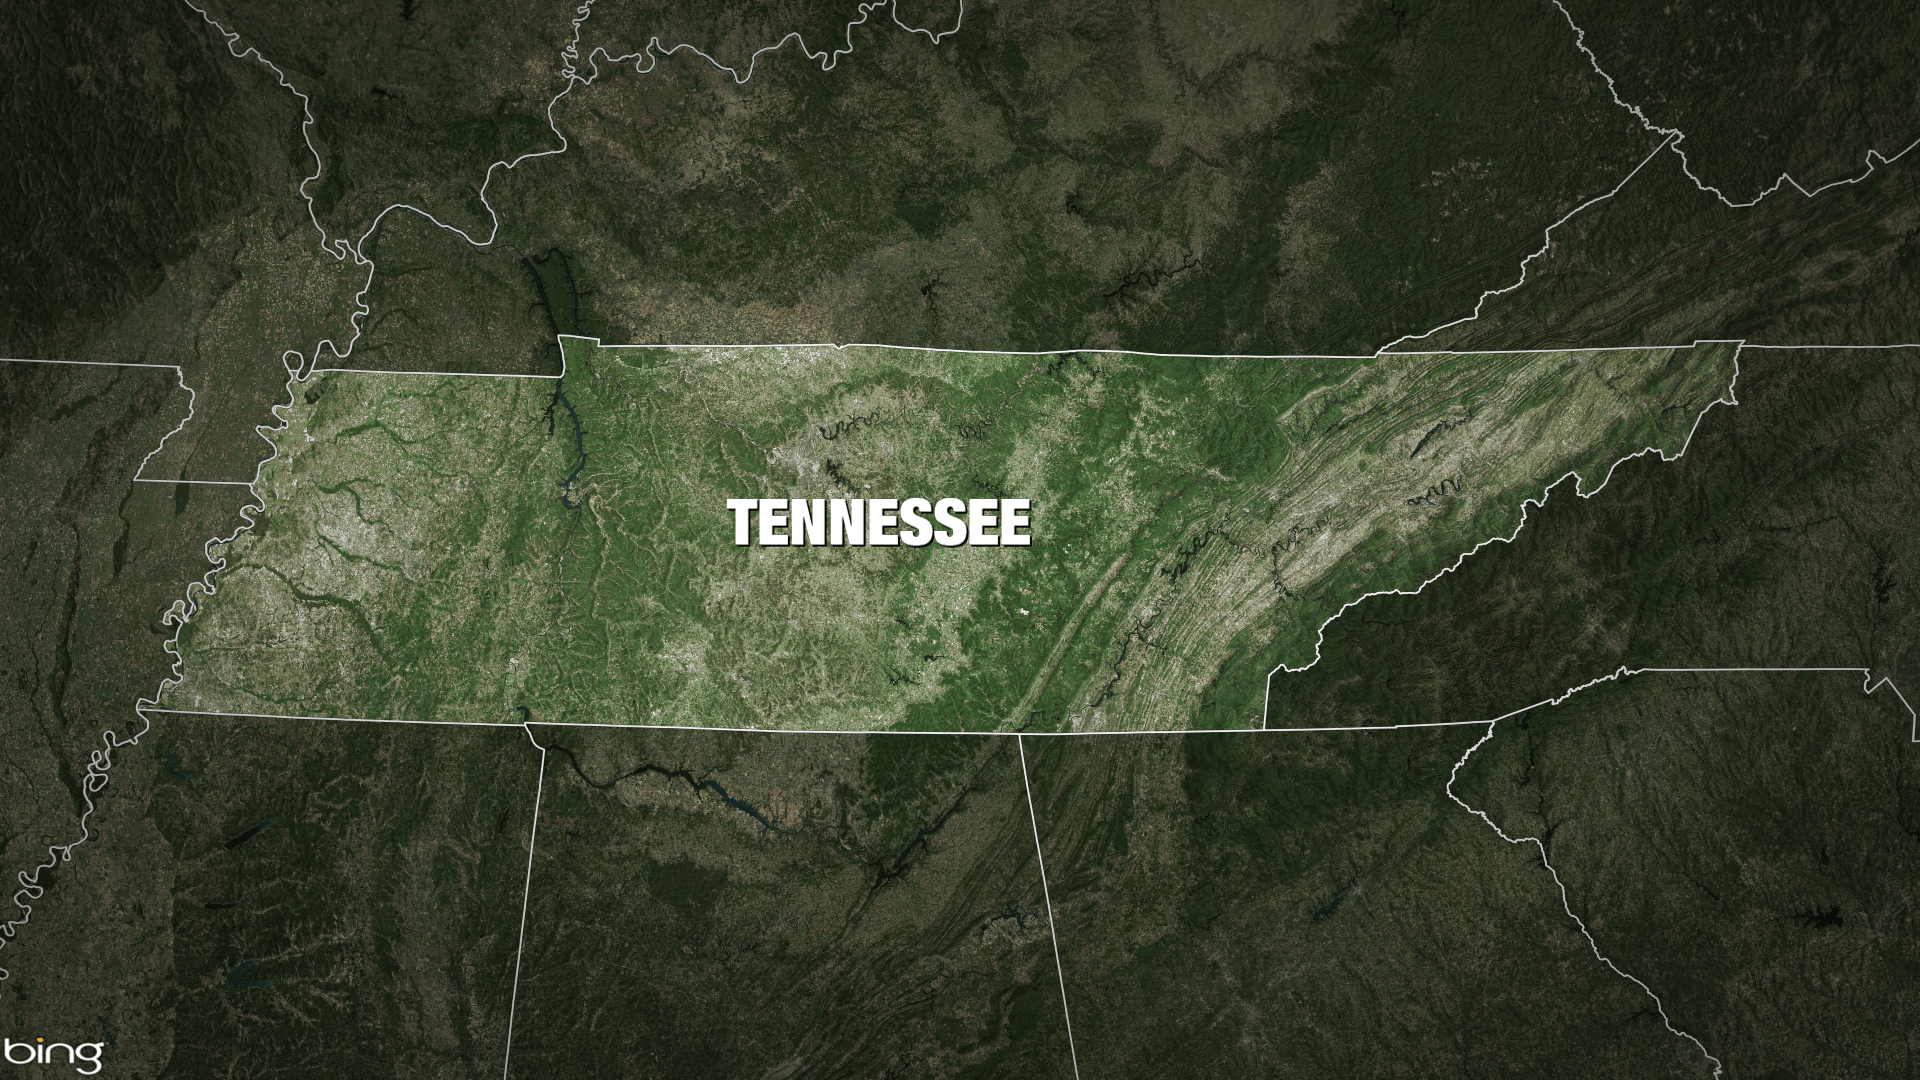 TENNESSEE MAP_1550712306782.png-842162552.jpg